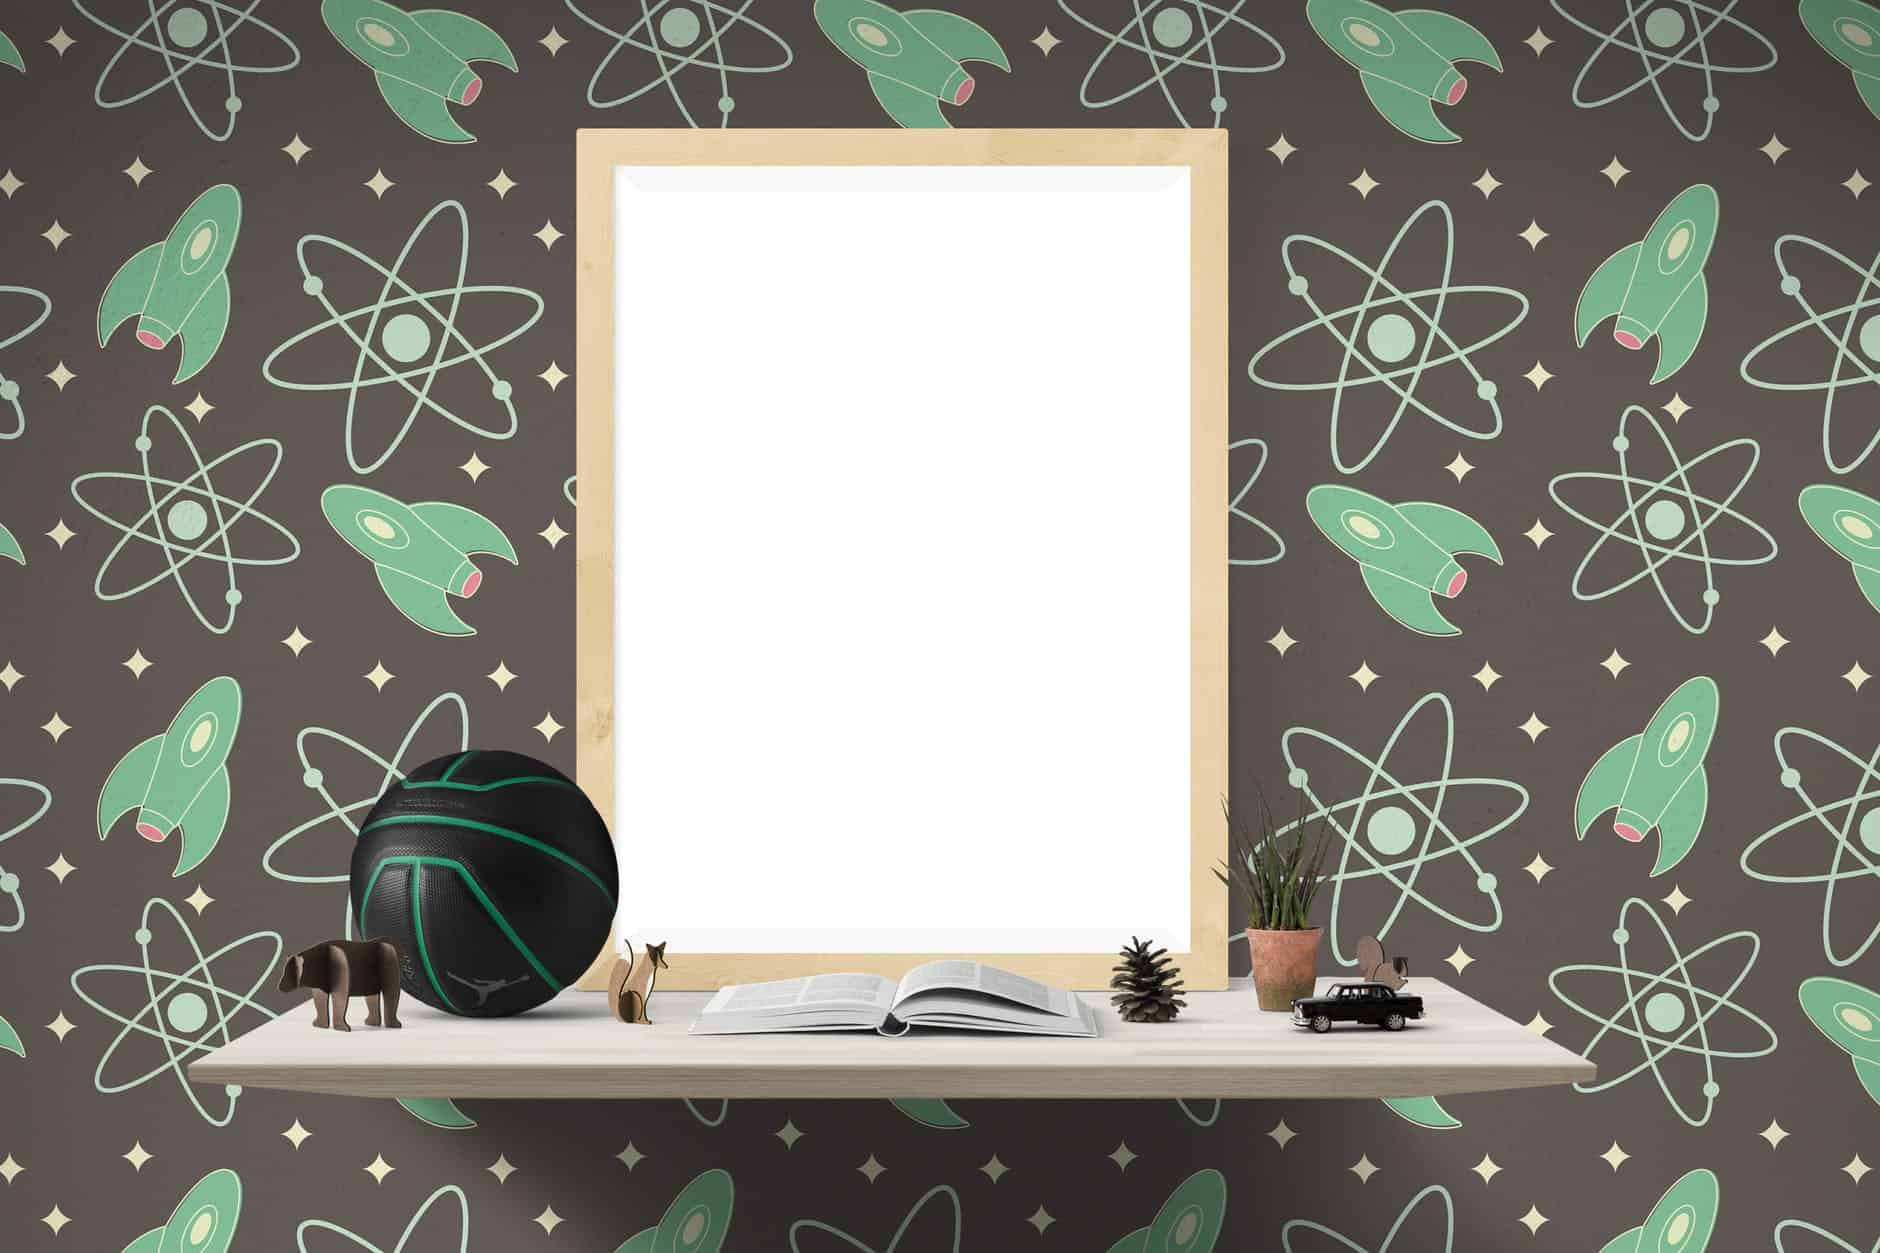 Different Options For Getting The Perfect Wallpaper Design